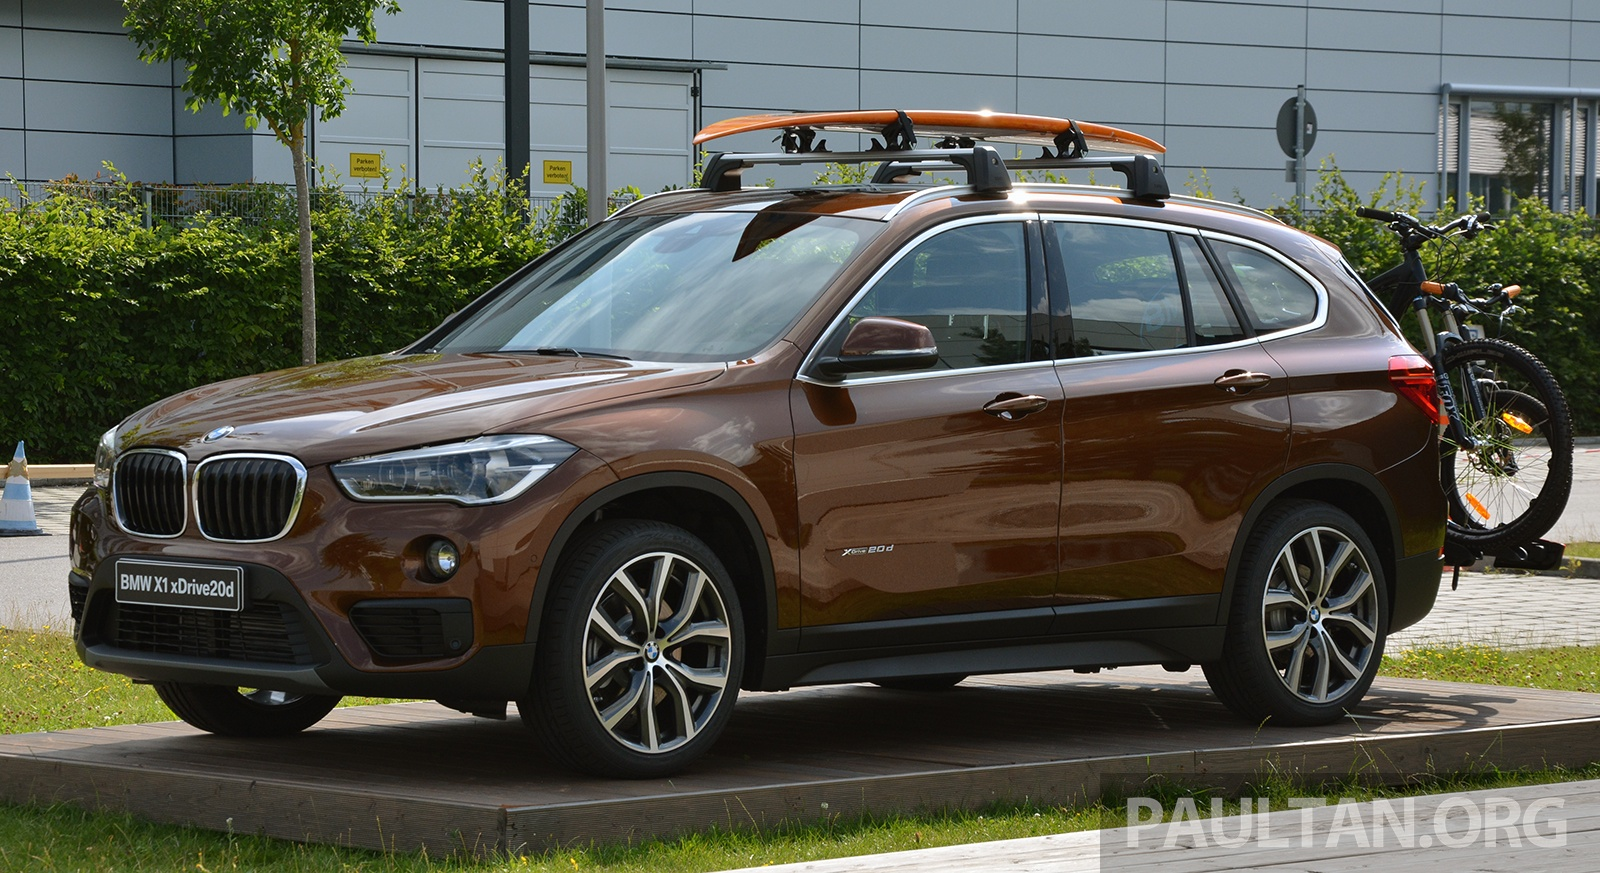 Driven 2016 F48 Bmw X1 The One To Rule Them All Image 359393